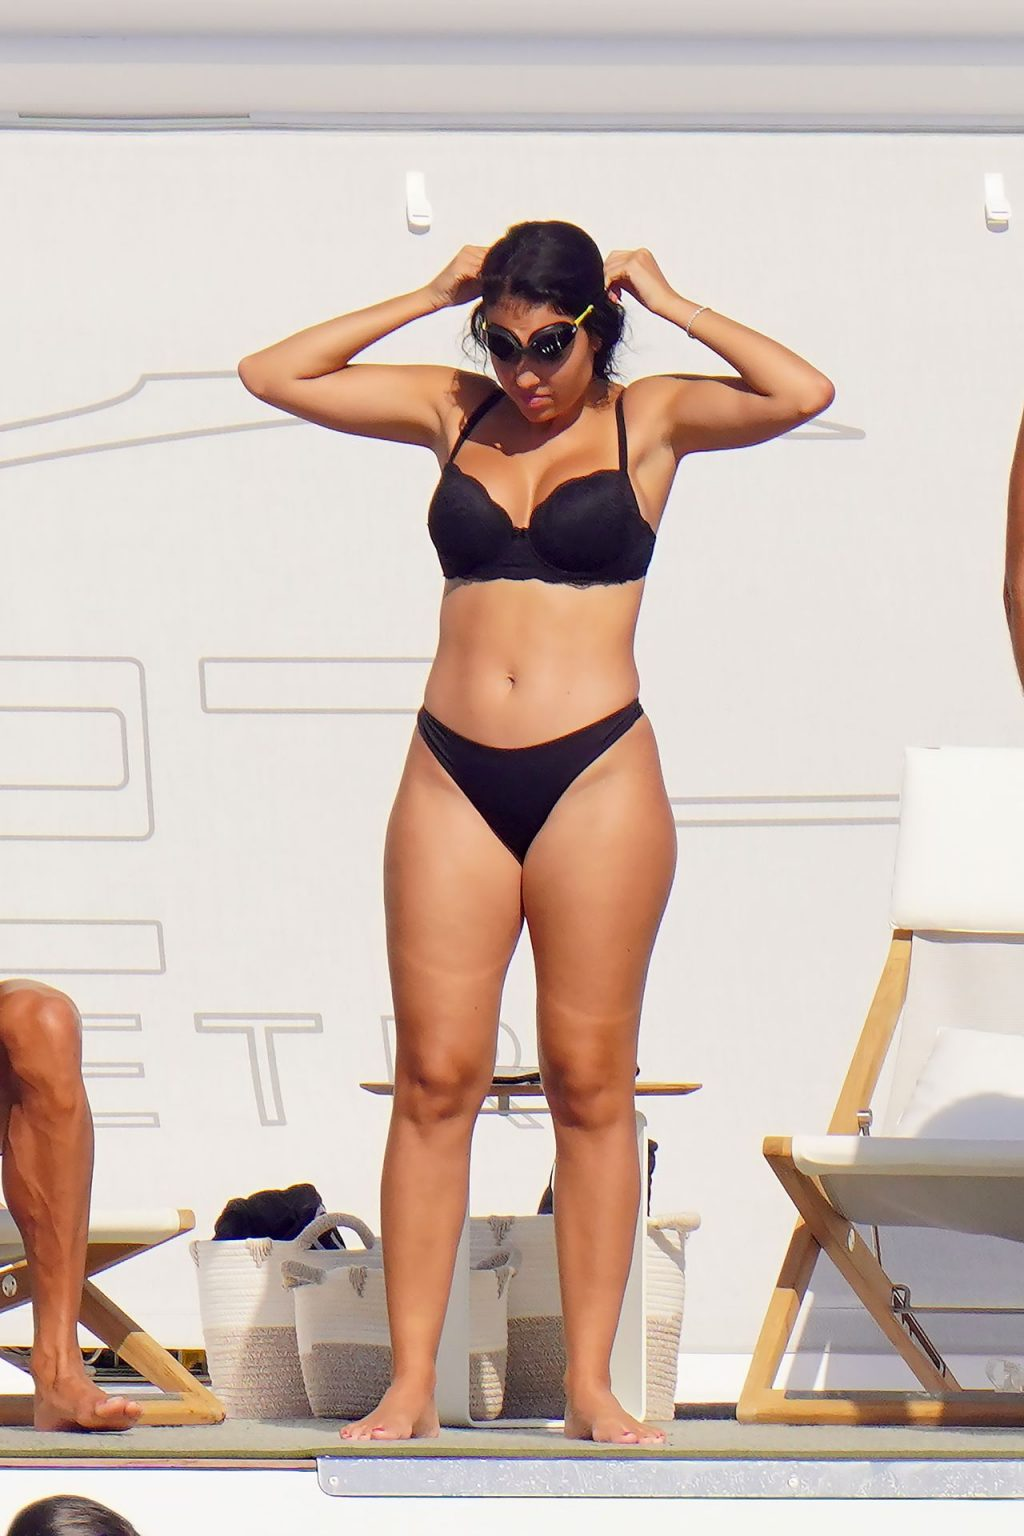 Georgina Rodriguez Shows Off Her Sexy Body on a Yacht (70 Photos)